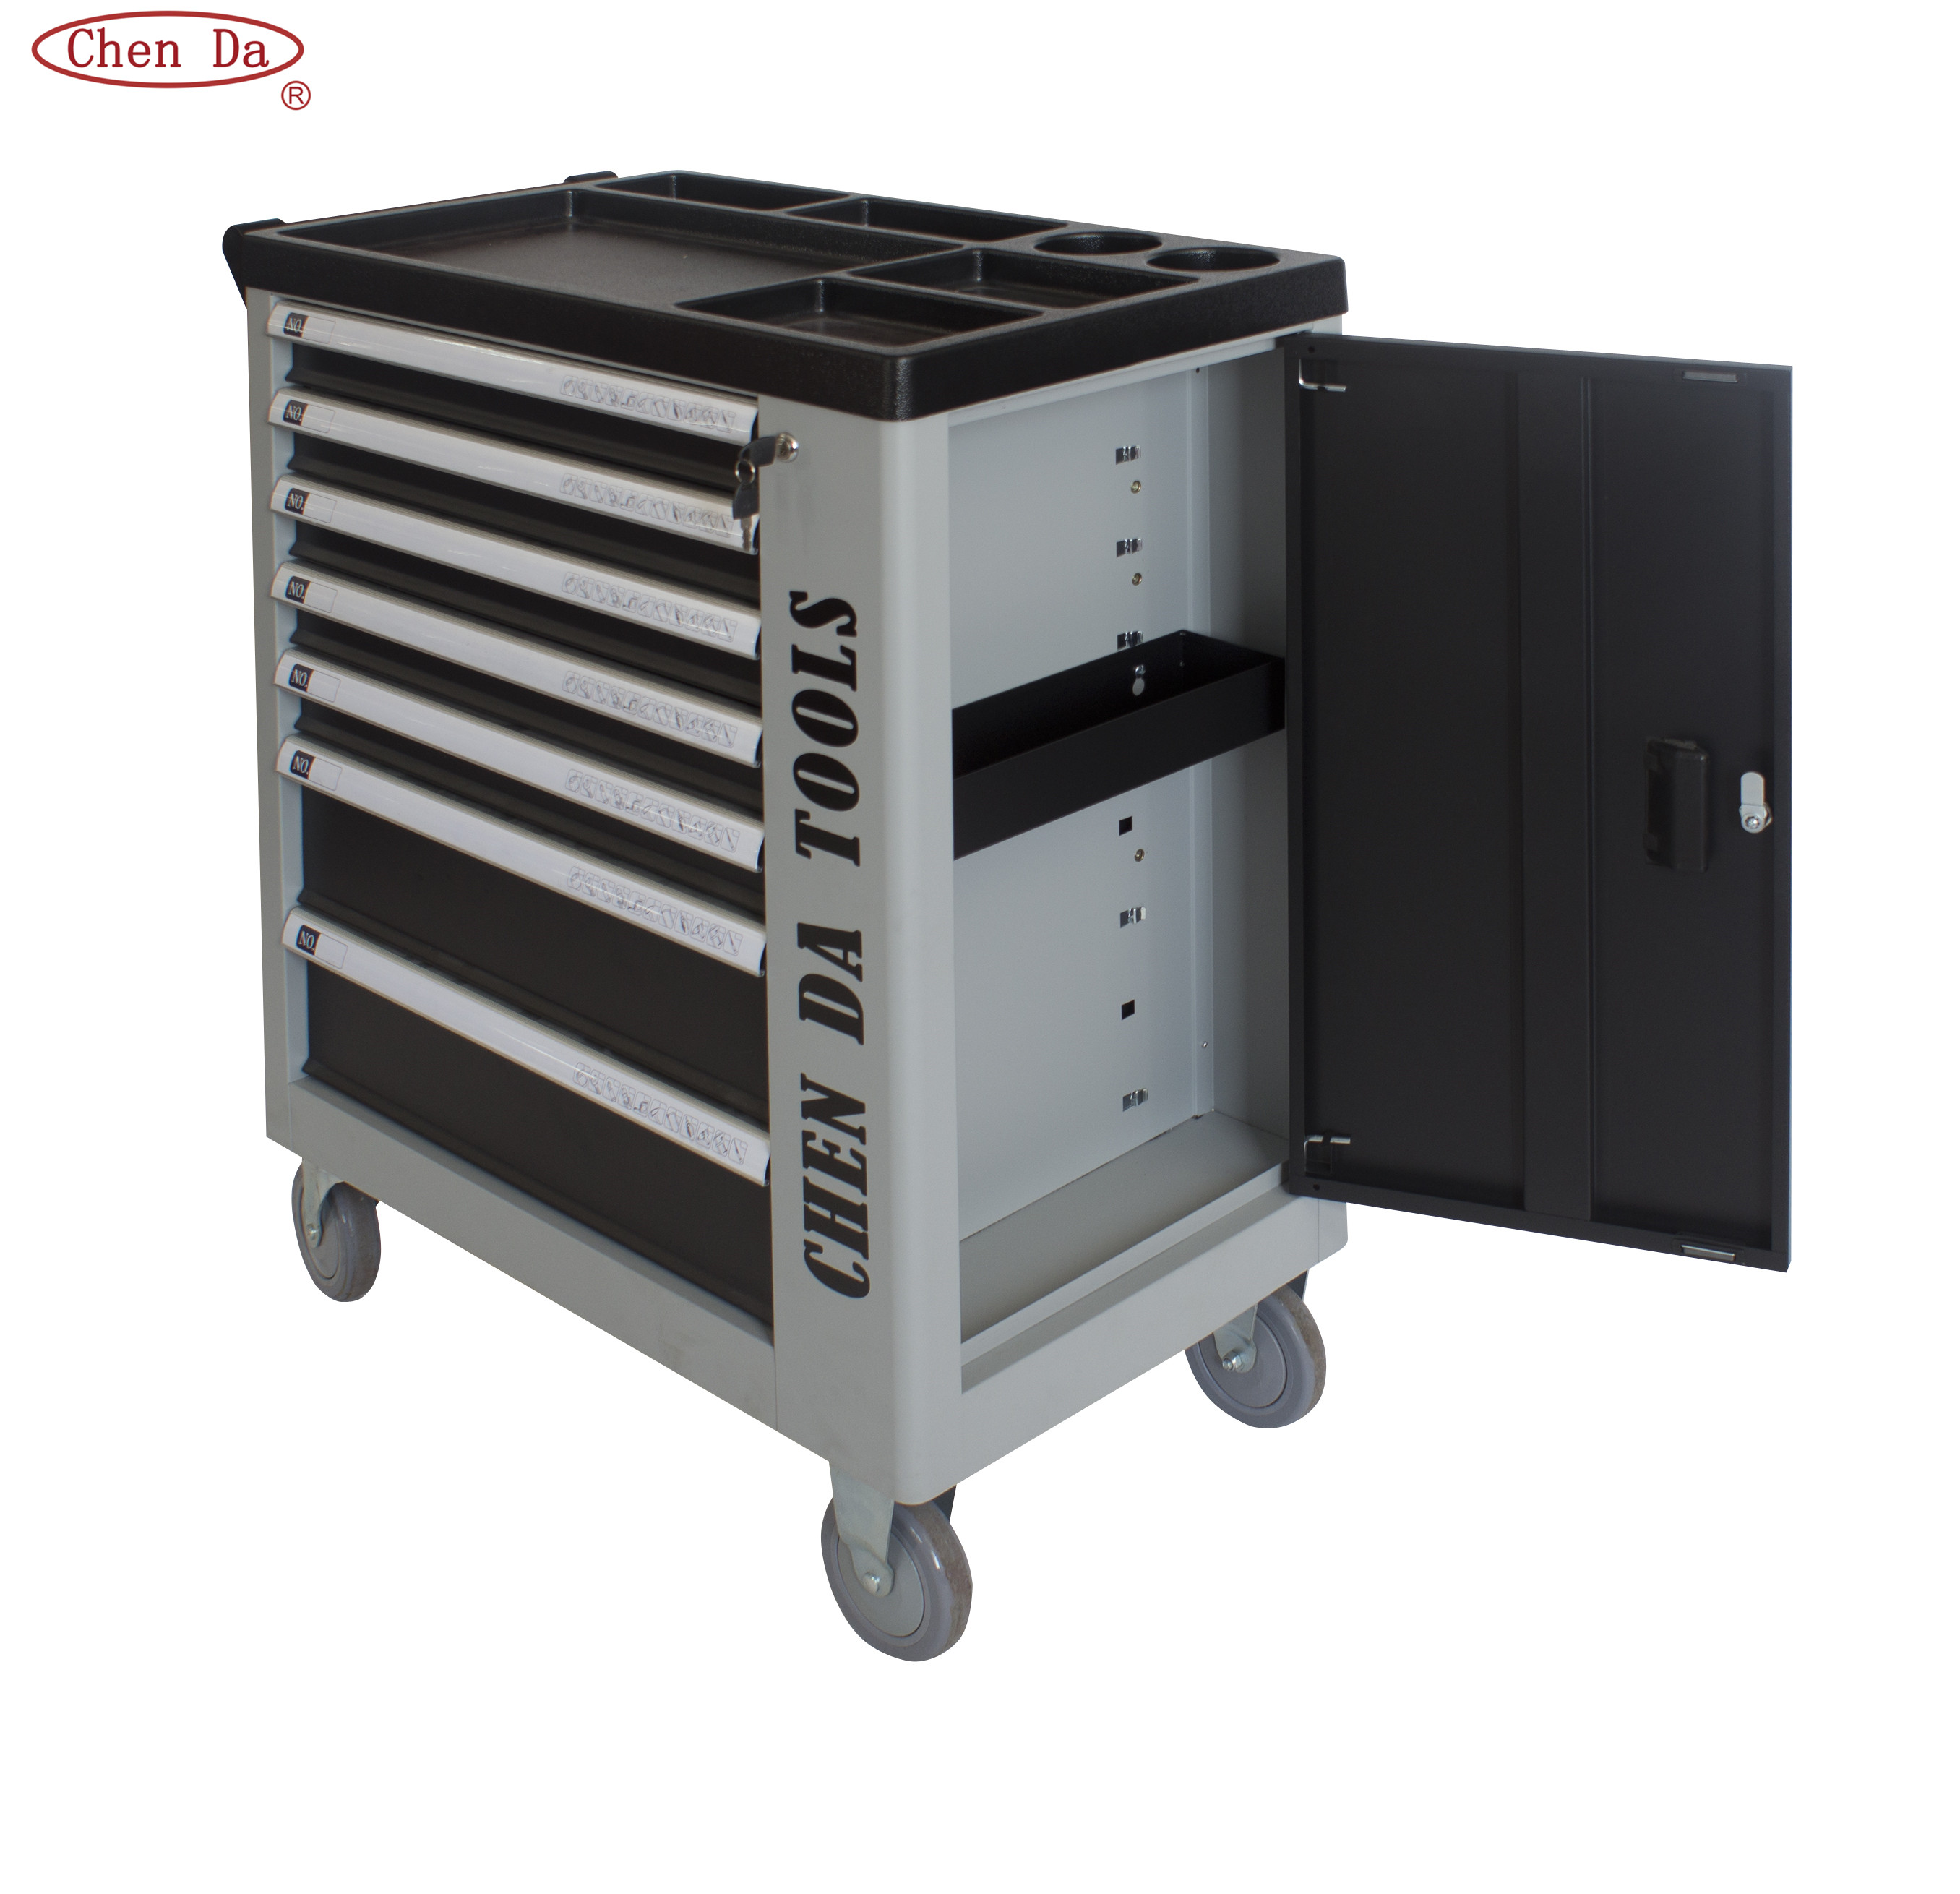 New designed 7 drawers tool box, Grey/black Color